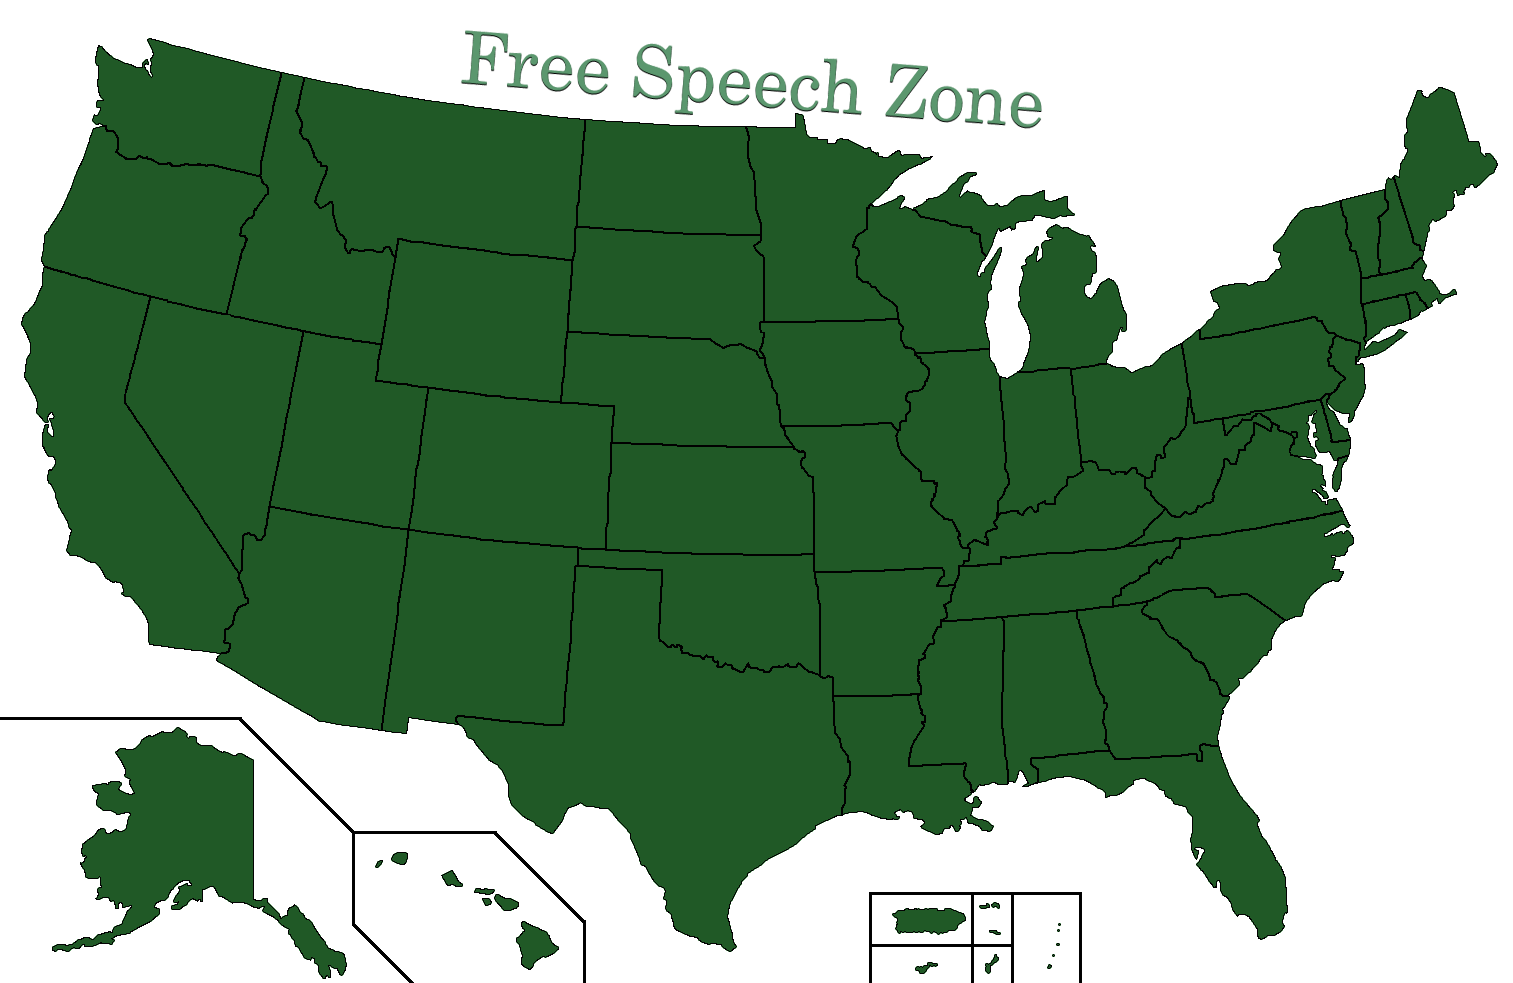 Free Speech Zone: A Map of the United States of America